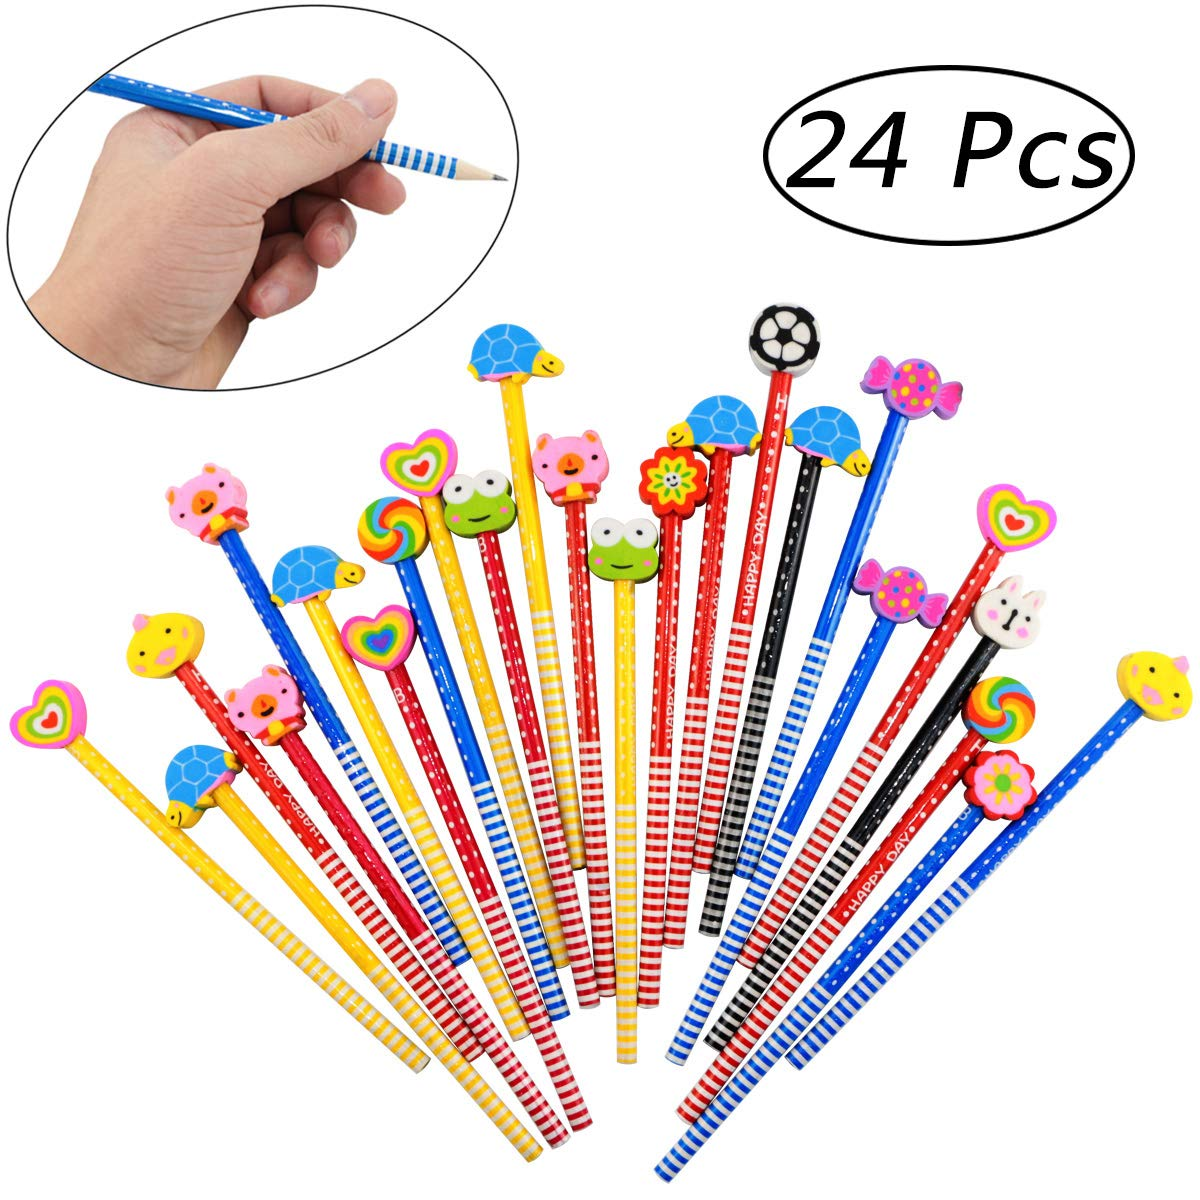 Etmact 24 Pack Kids Wooden Pencils,Colorful Stripe Pencil with Cute Animals Eraser